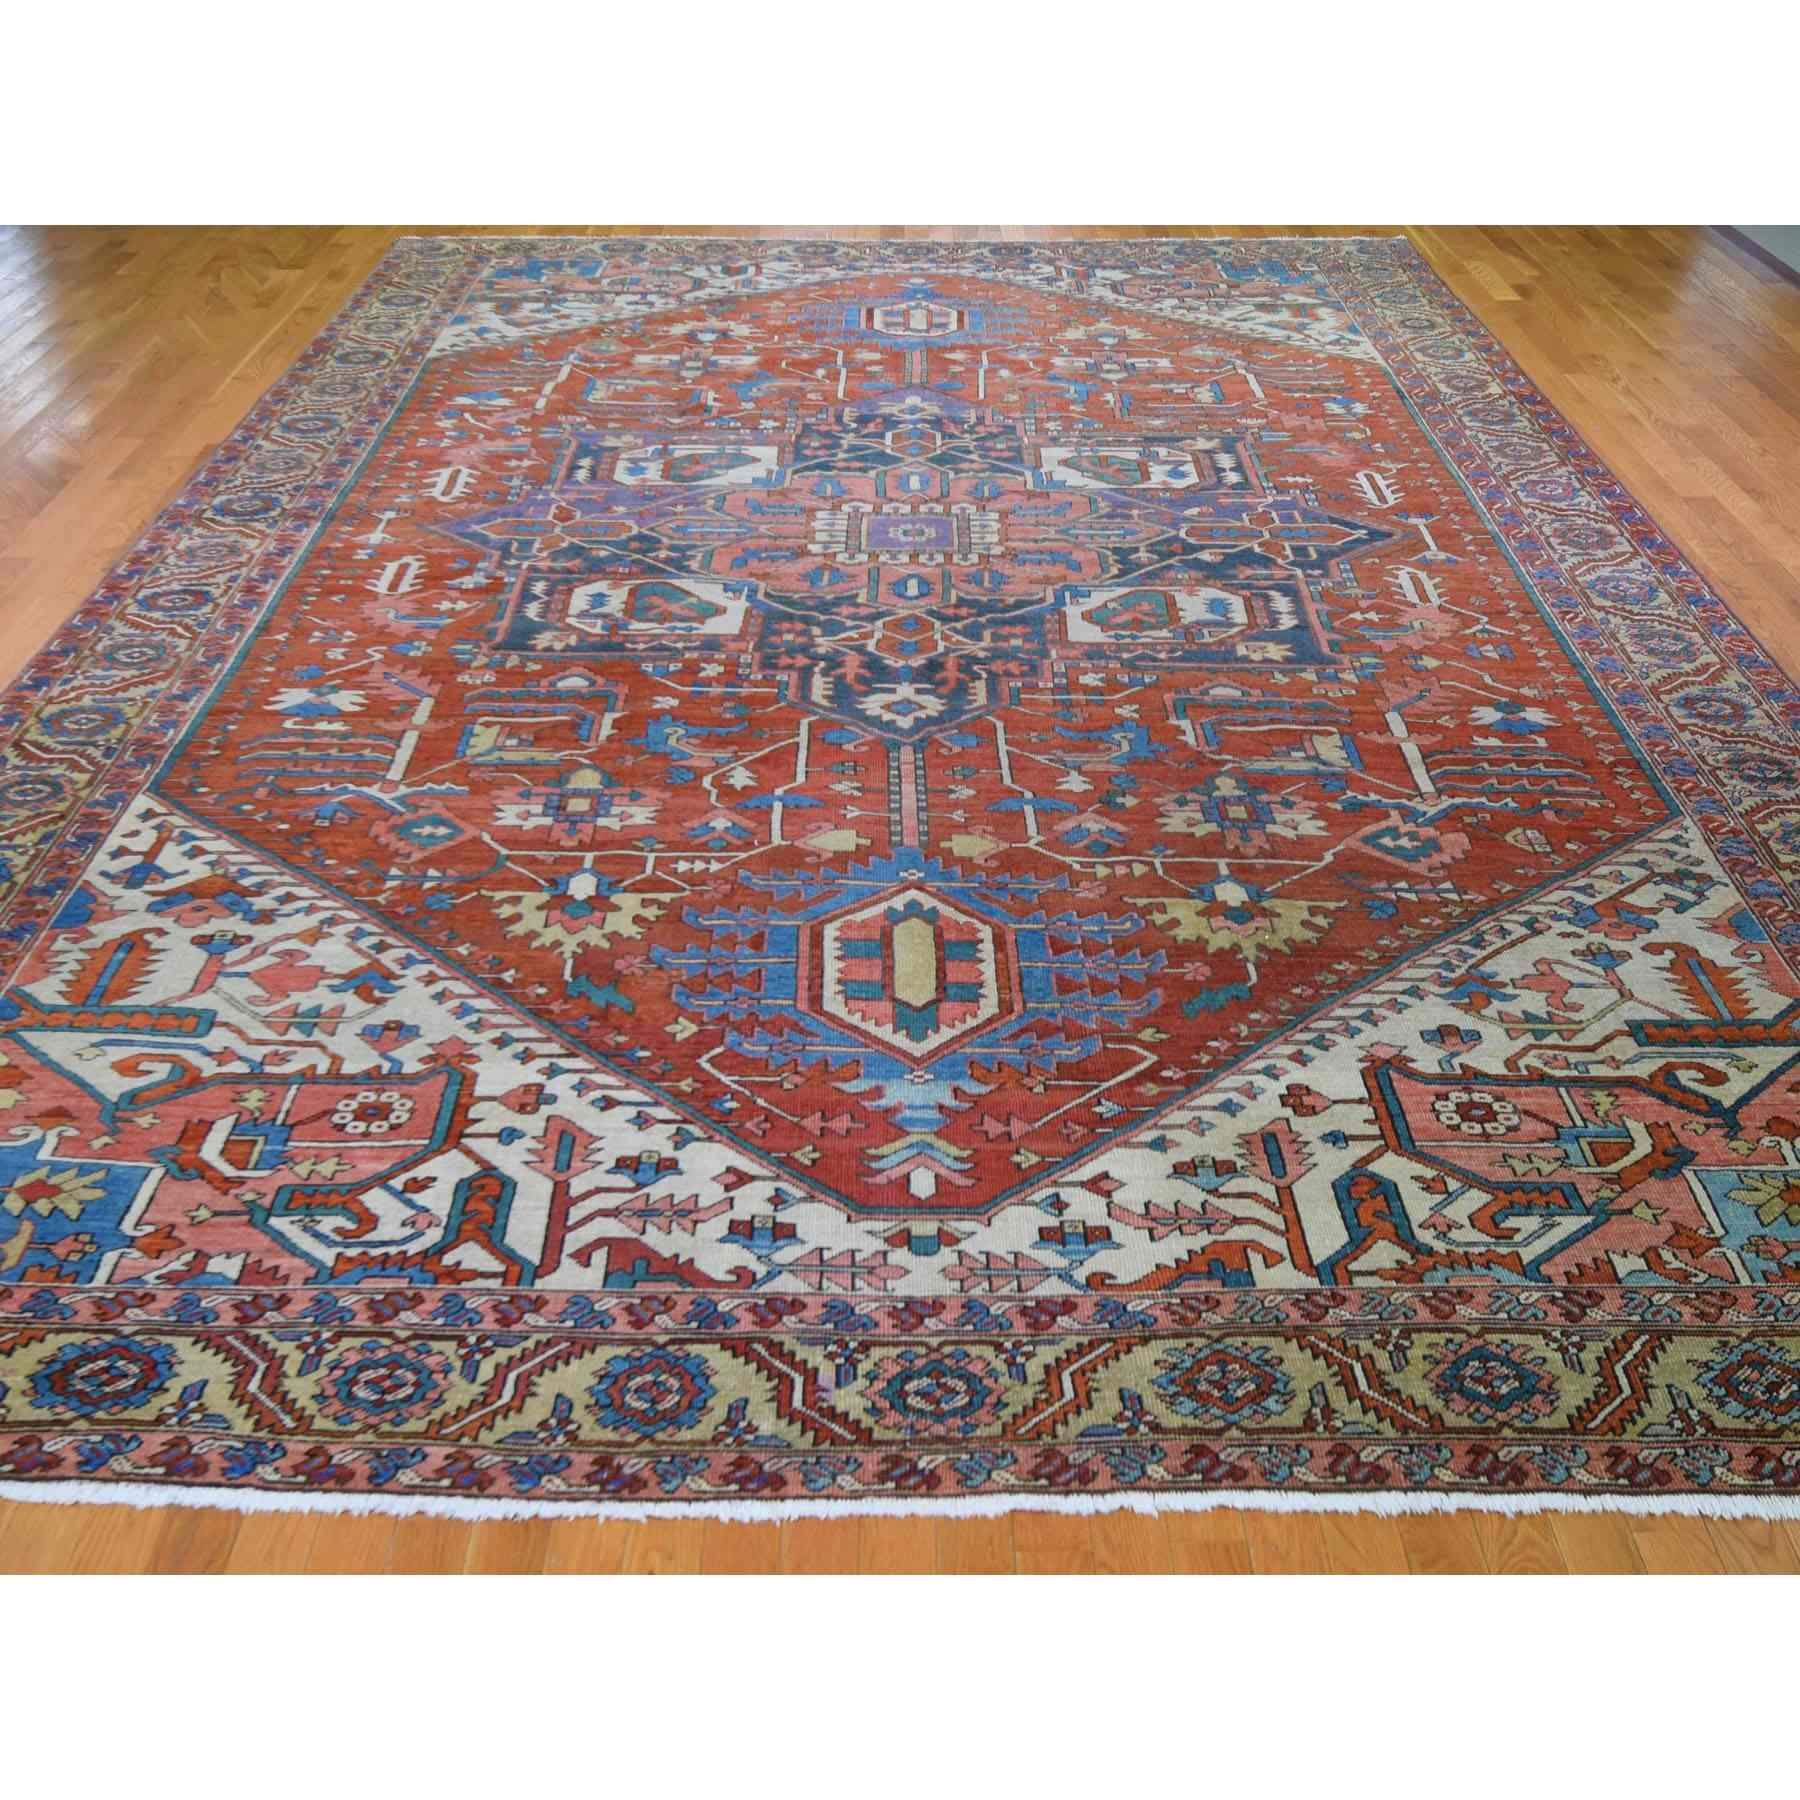 Antique-Hand-Knotted-Rug-245245